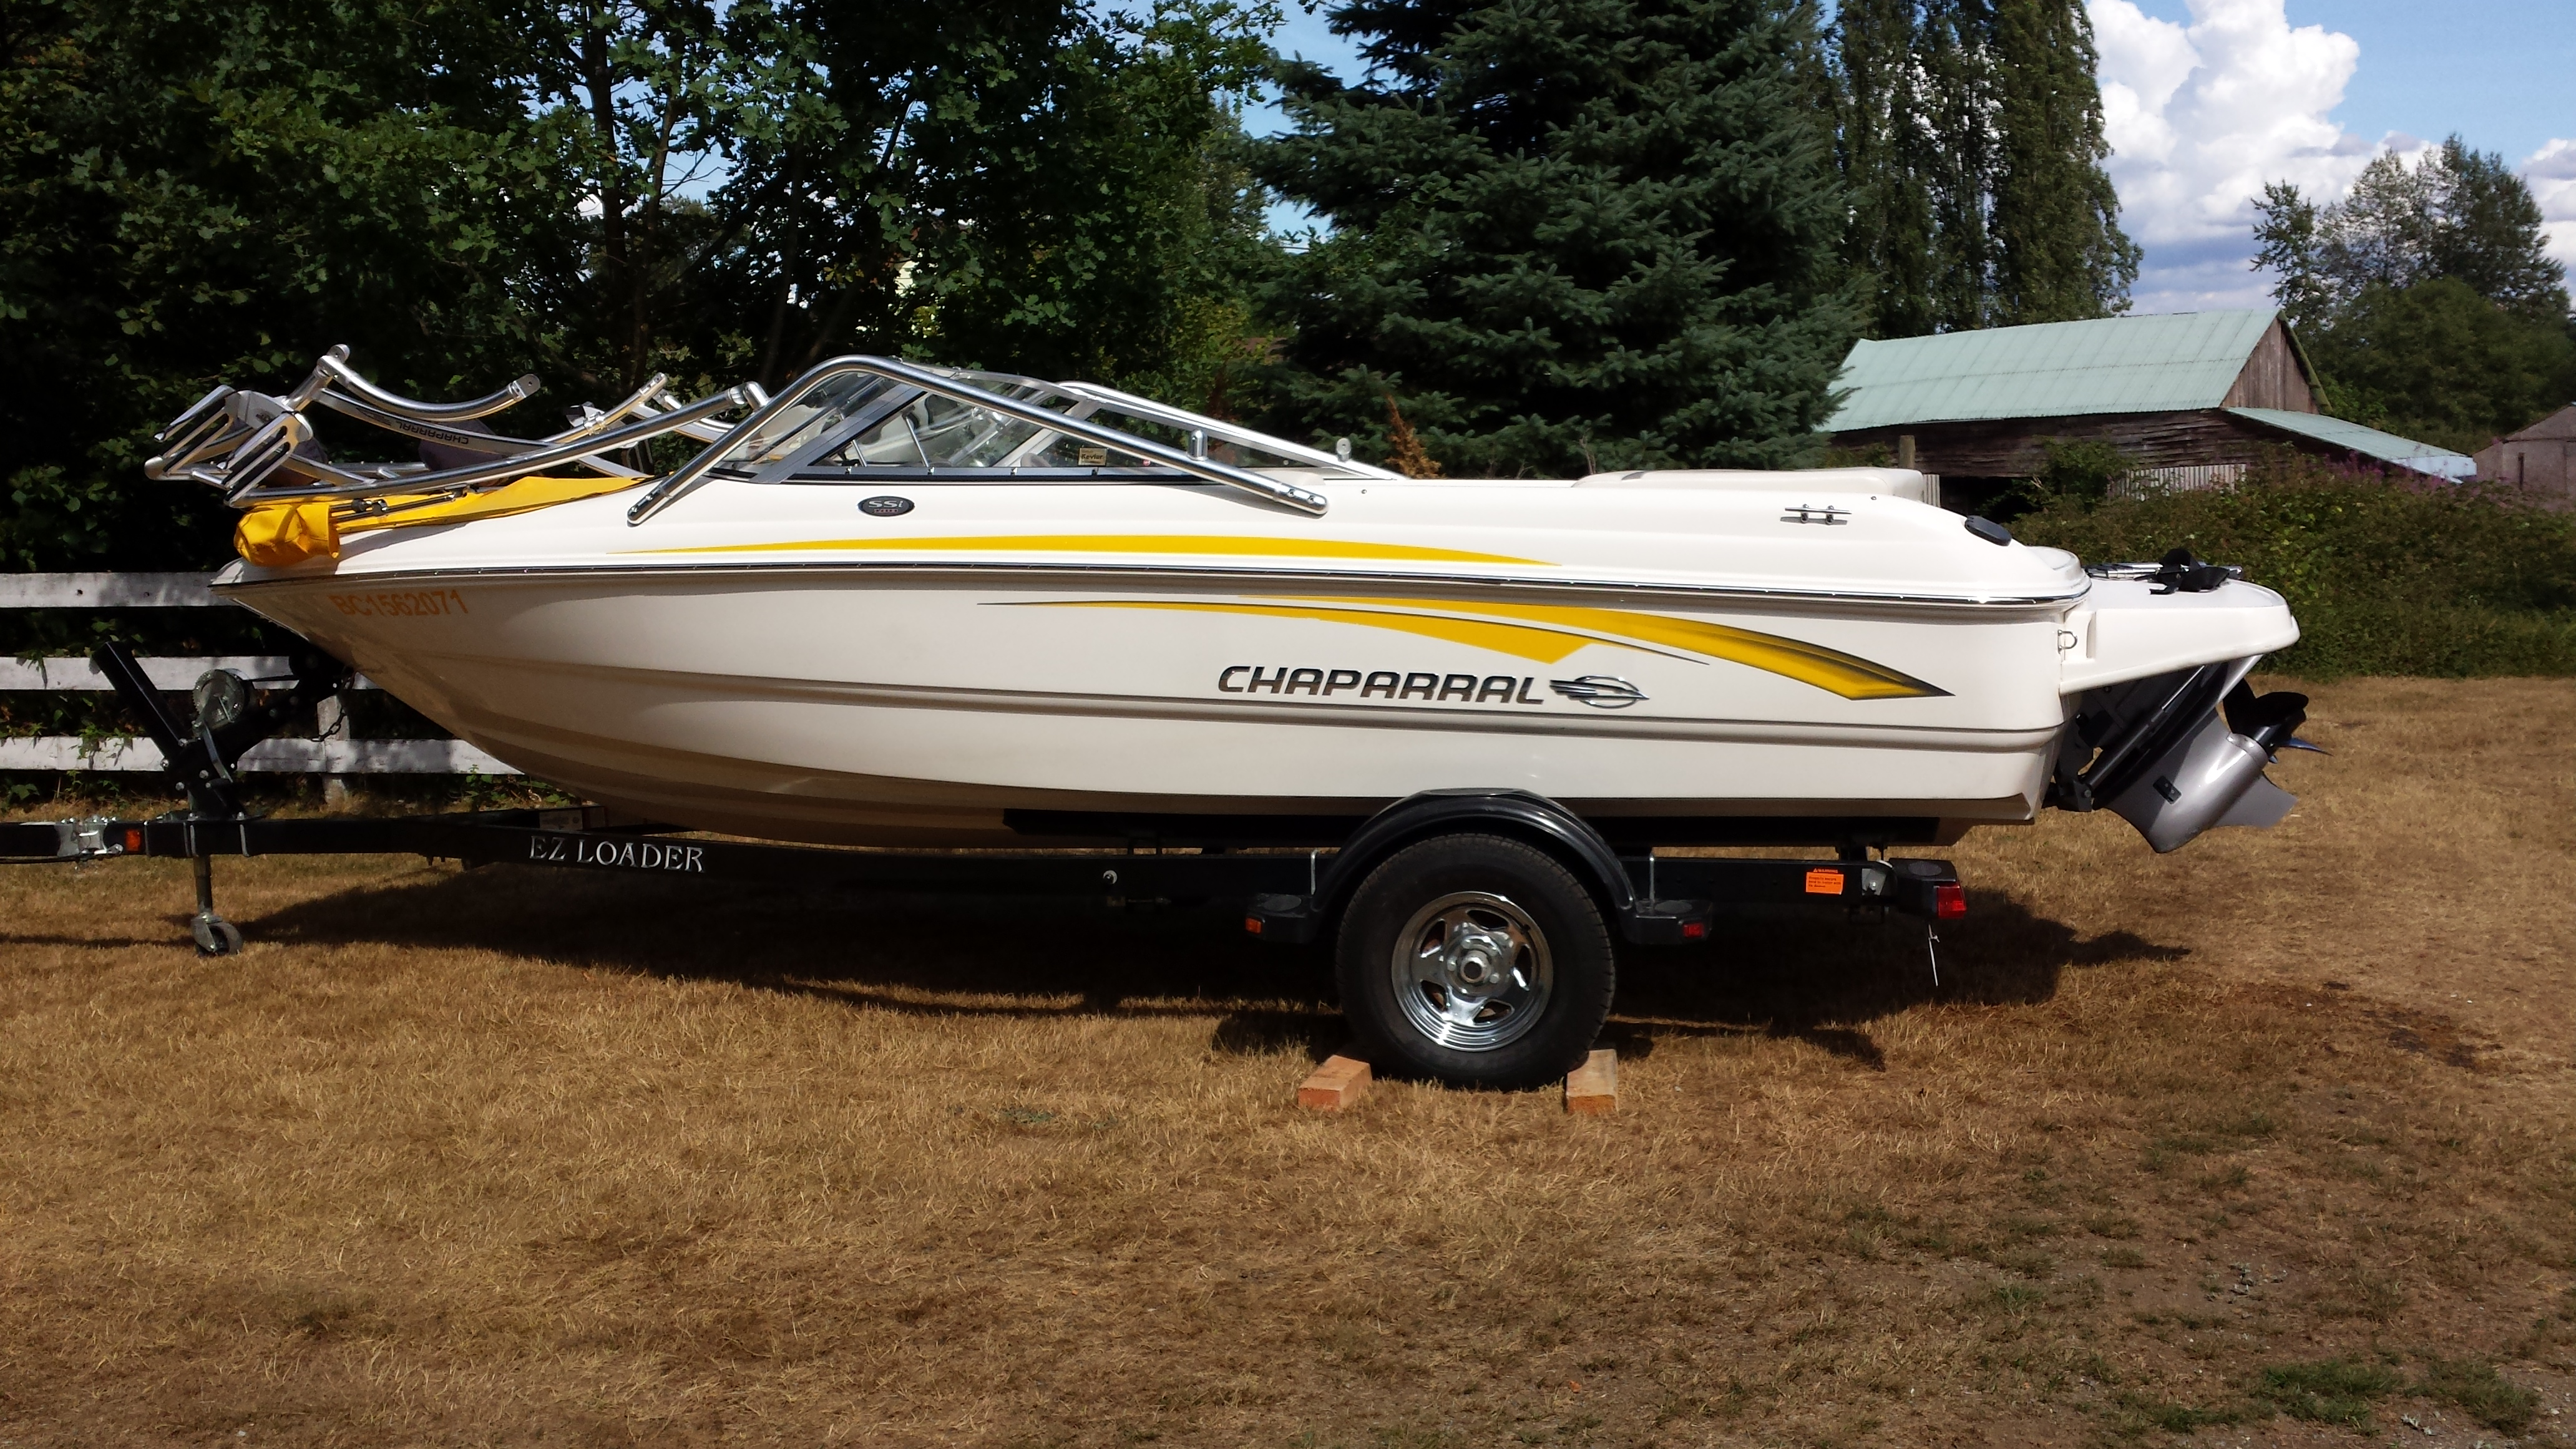 Chaparral ski boat with boat repair service including hull fiberglass and gelcoat repairs for a Abbotsford BC customer.